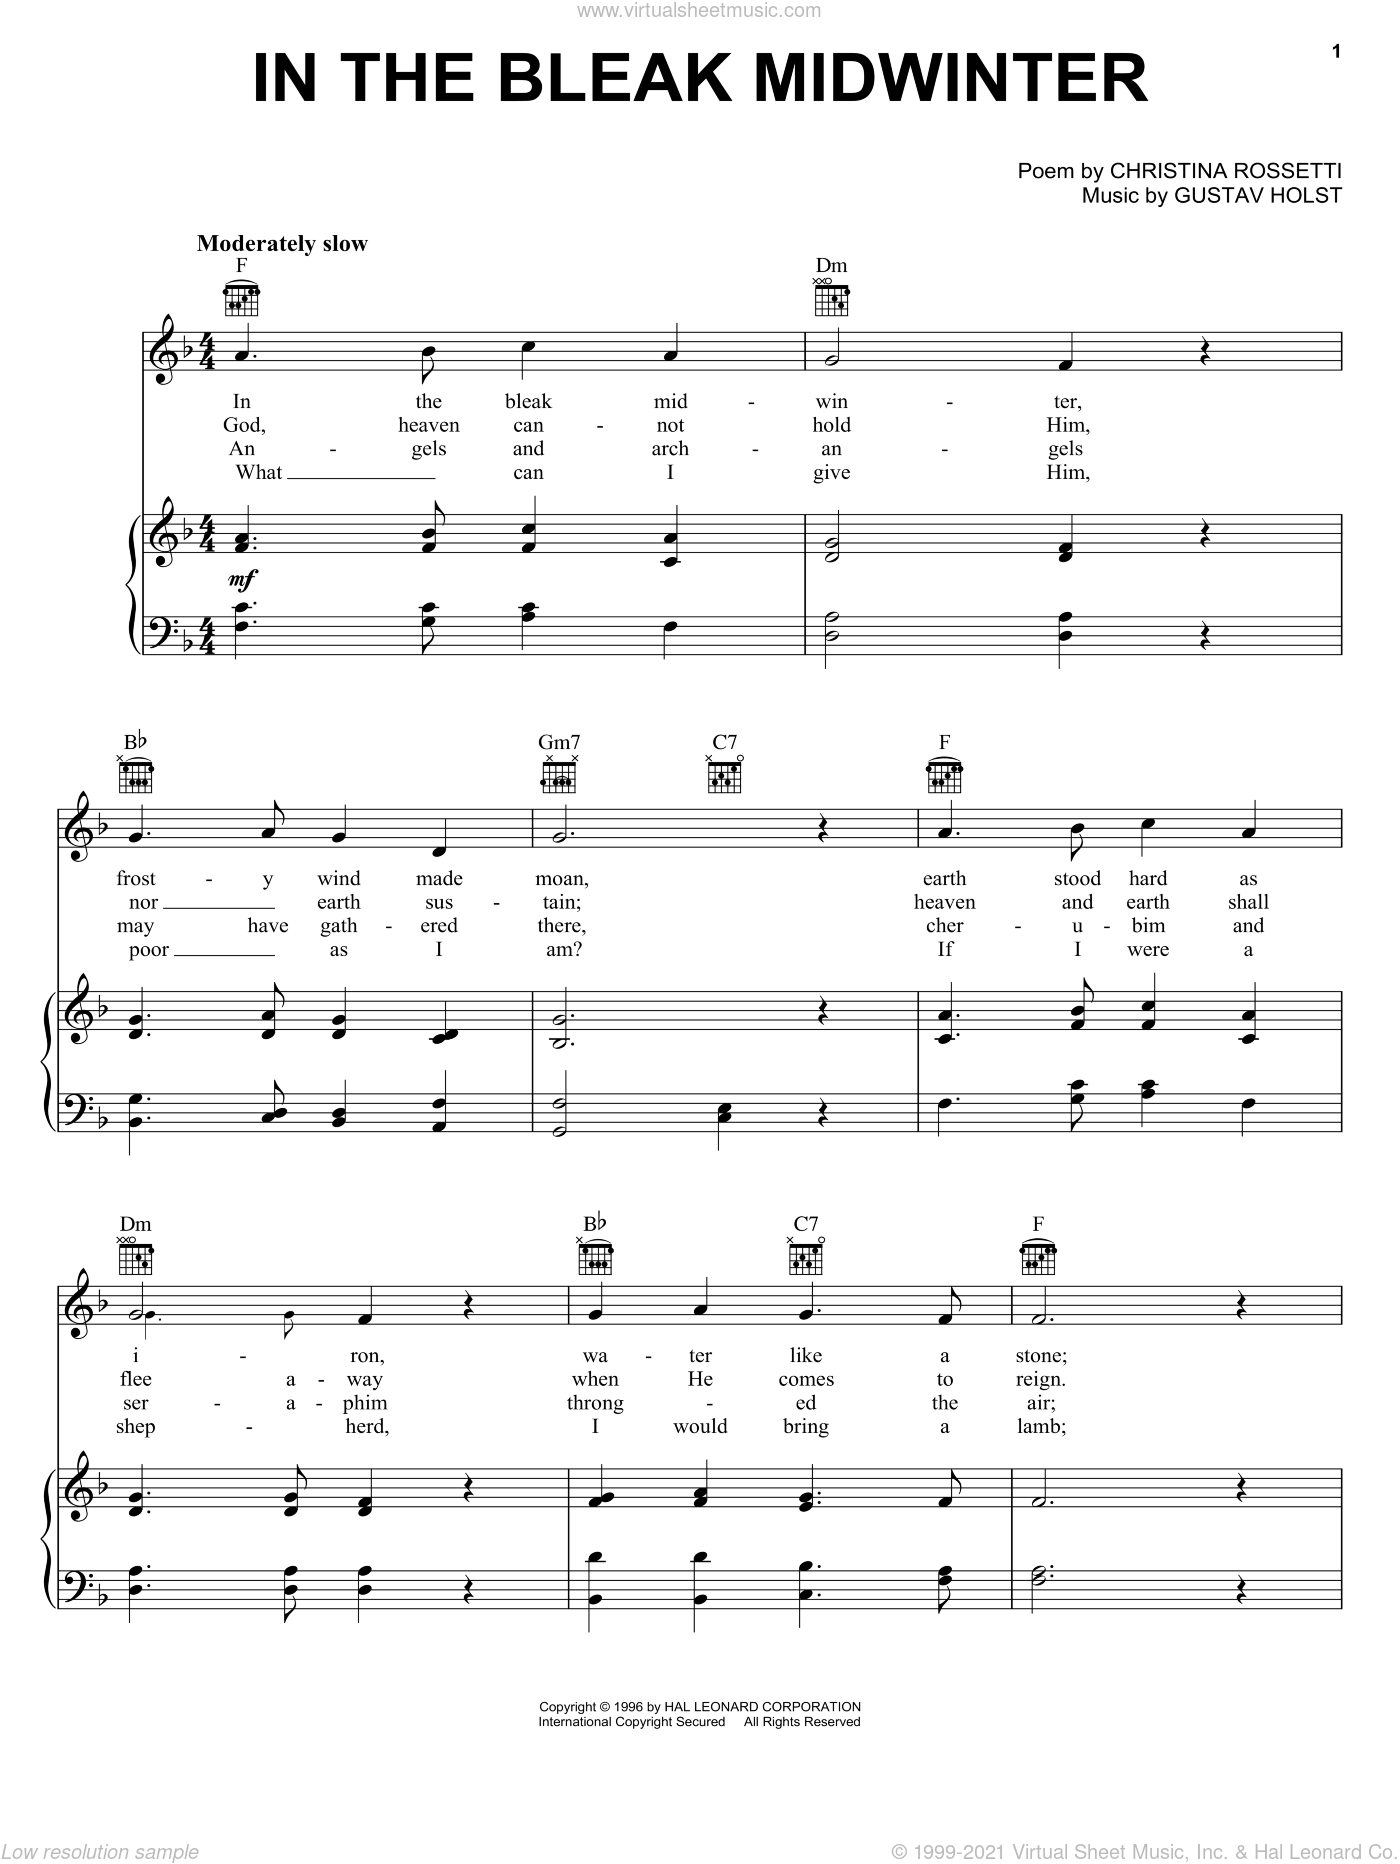 In The Bleak Midwinter sheet music for voice, piano or guitar by Christina Rossetti